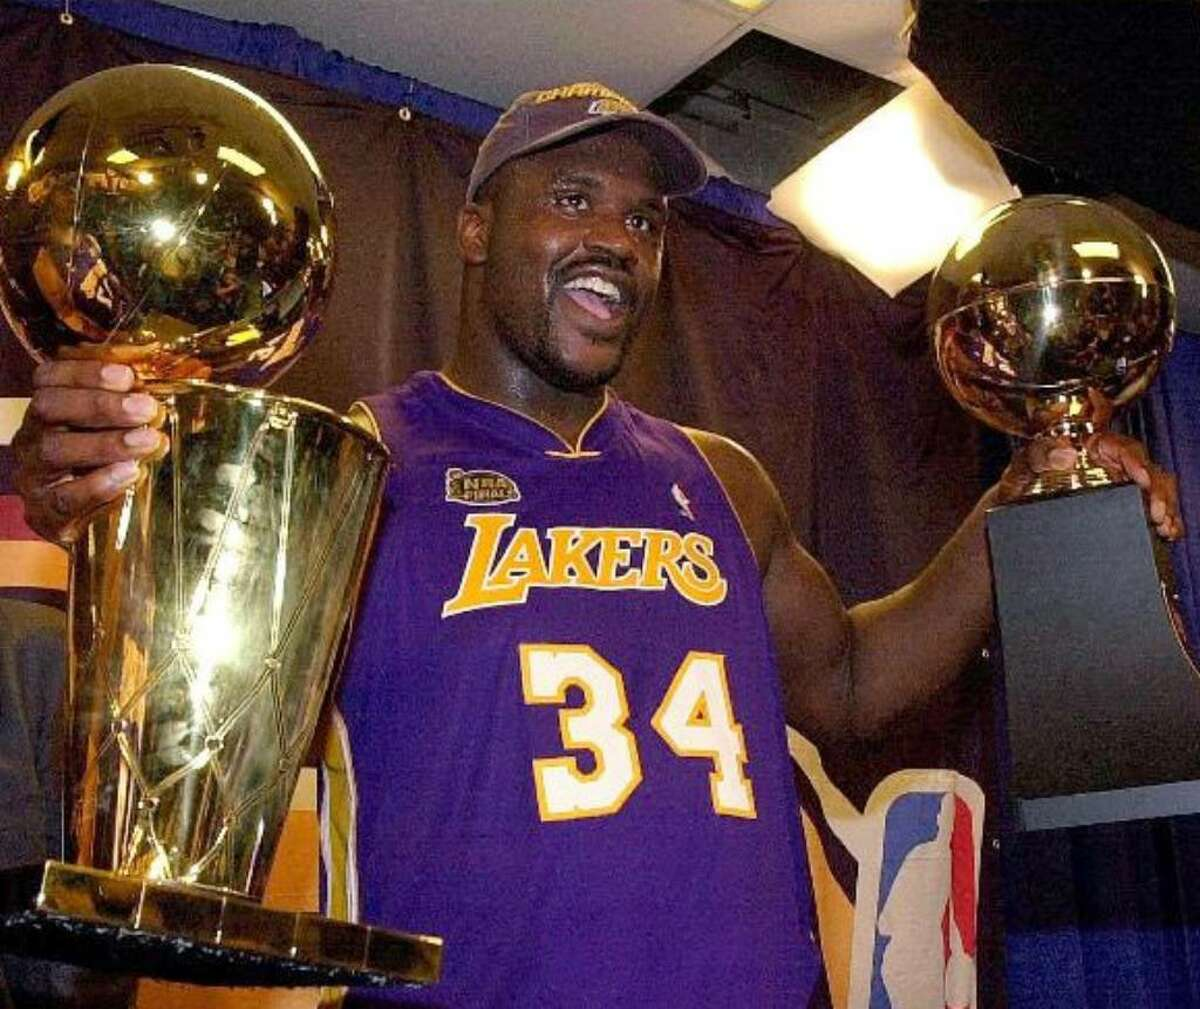 Shaquille O'Neal holds the Finals MVP trophy (right) and Larry O'Briean Championship trophy after the Los Angeles Lakers beat the Philadelphia 76ers to win the NBA title in 2001 - one of his three rings with L.A.